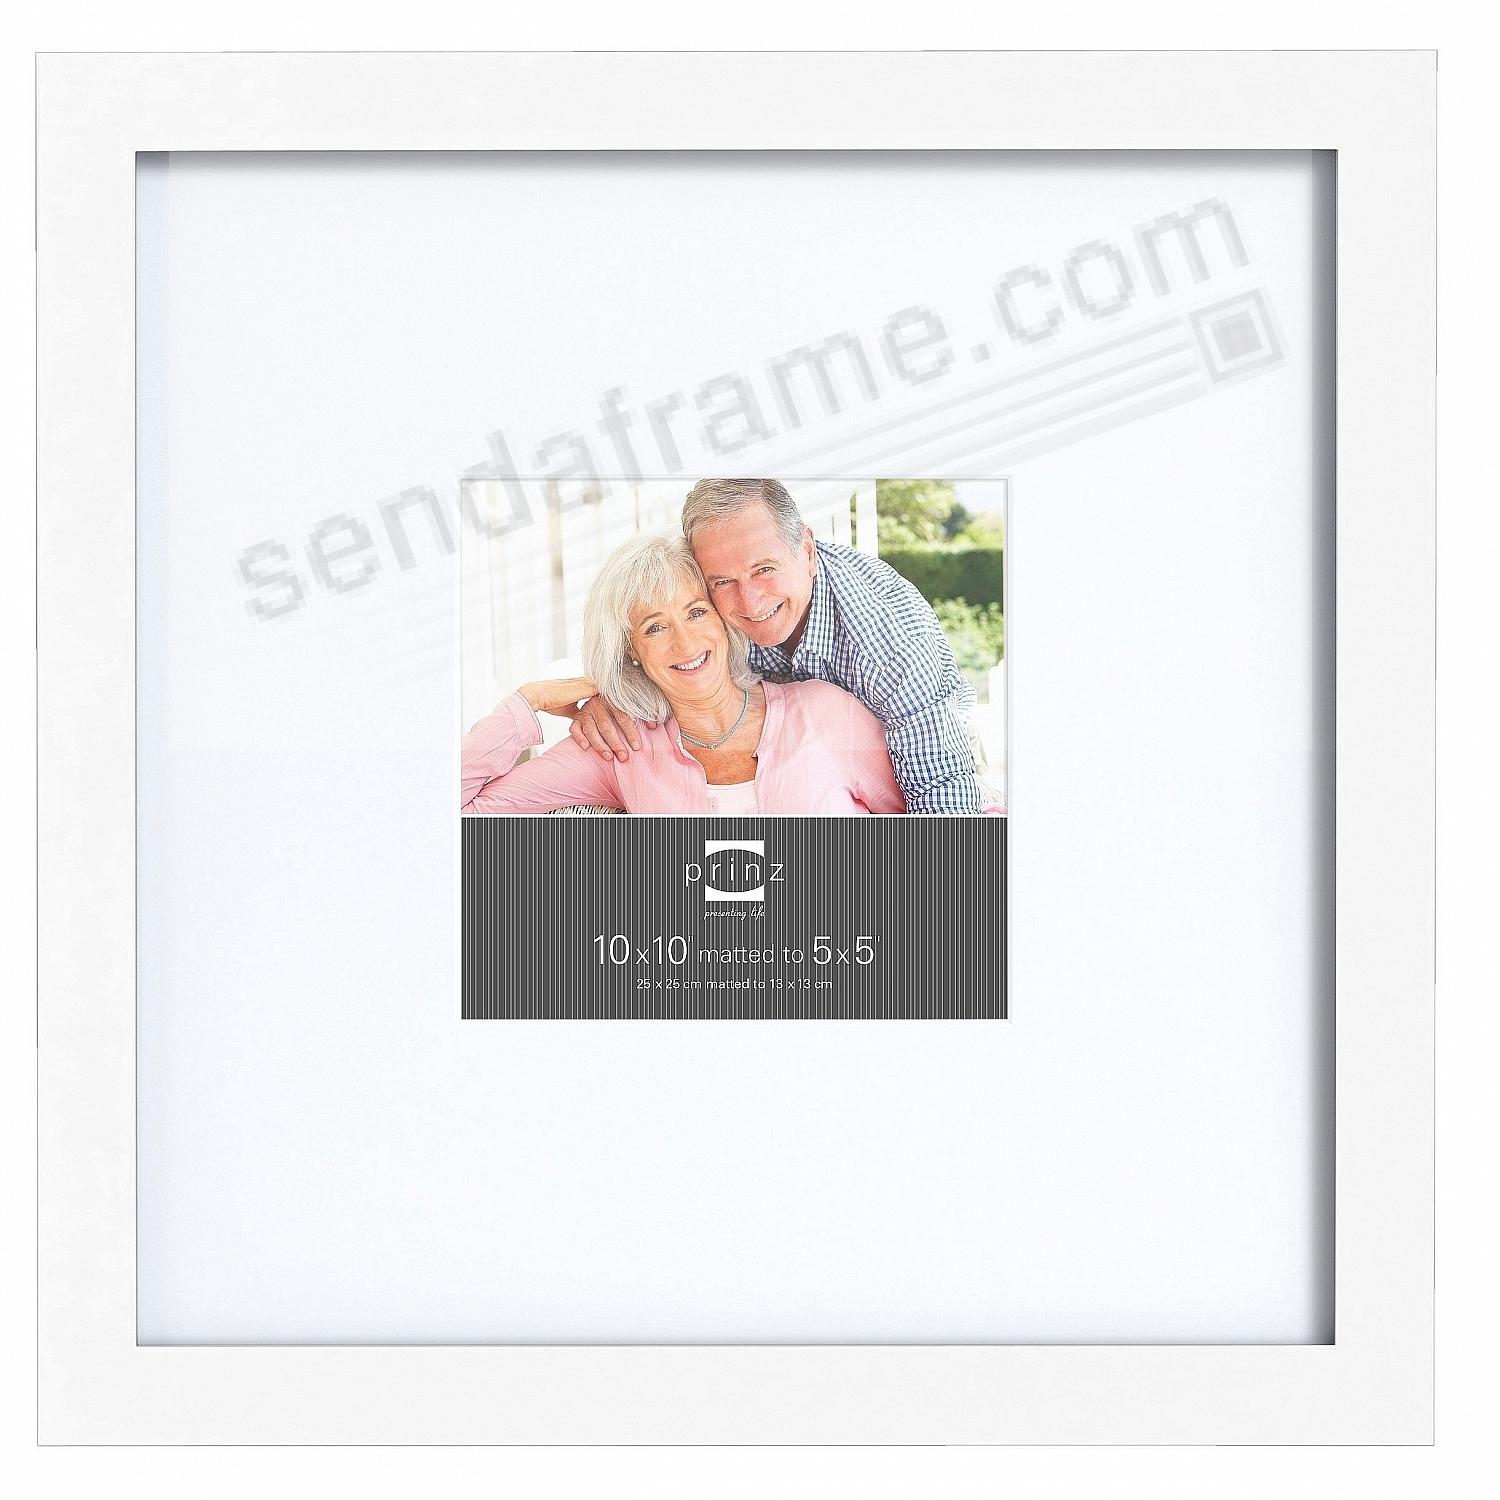 gallery expressions white 10x105x5 frame wwhite mat by prinz